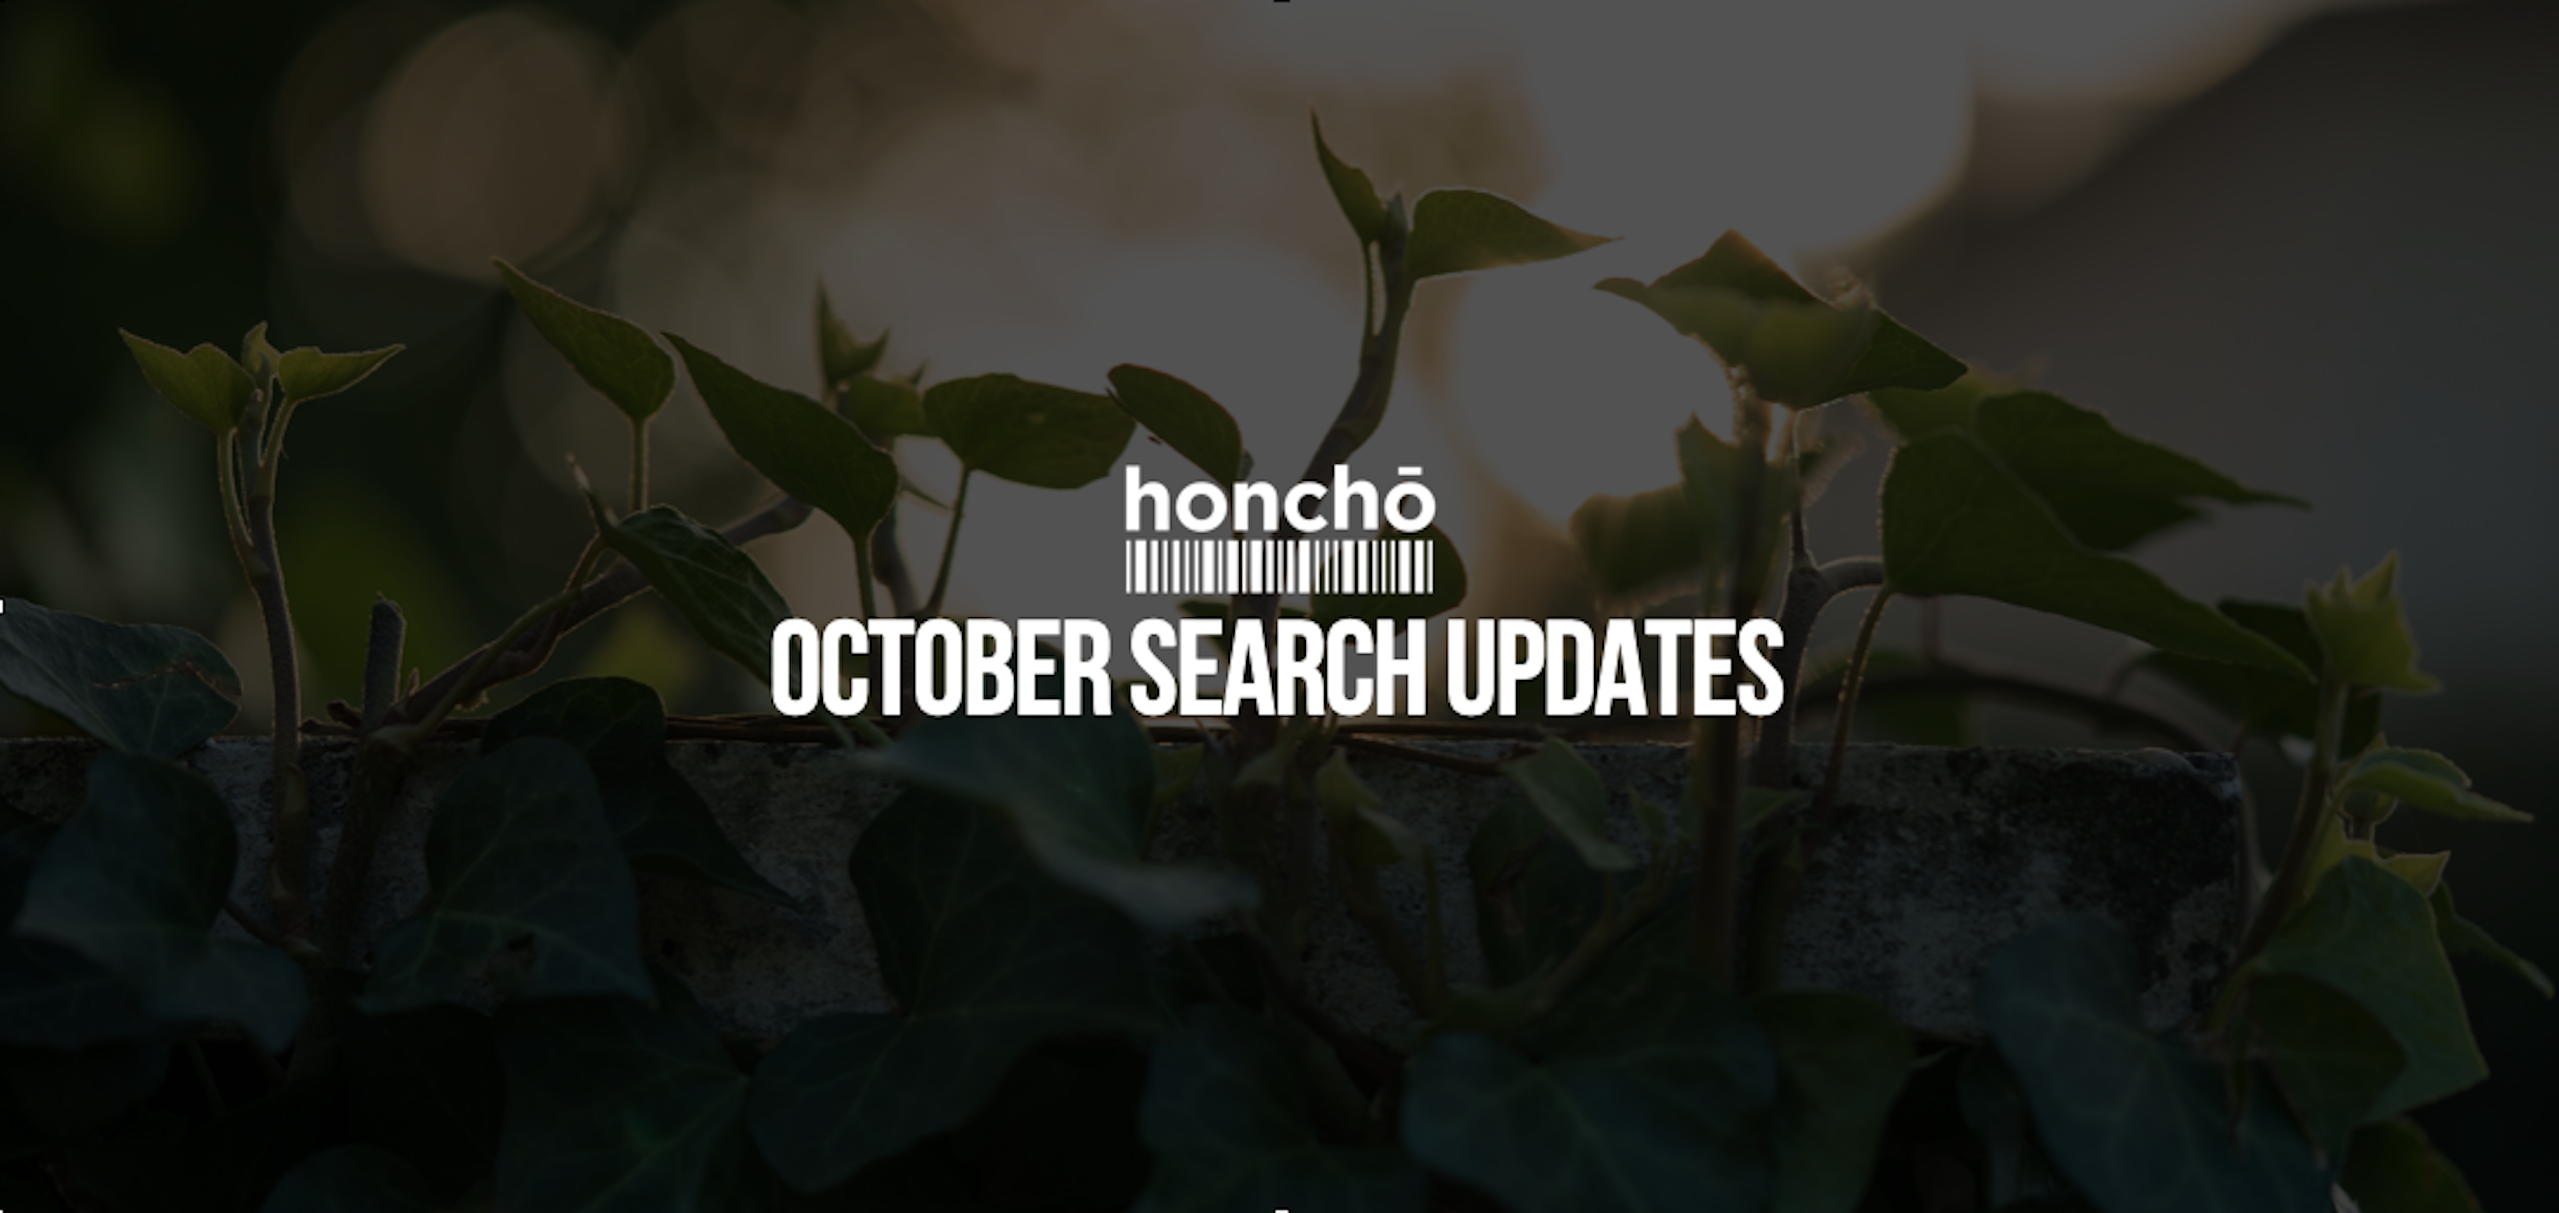 October Search Updates